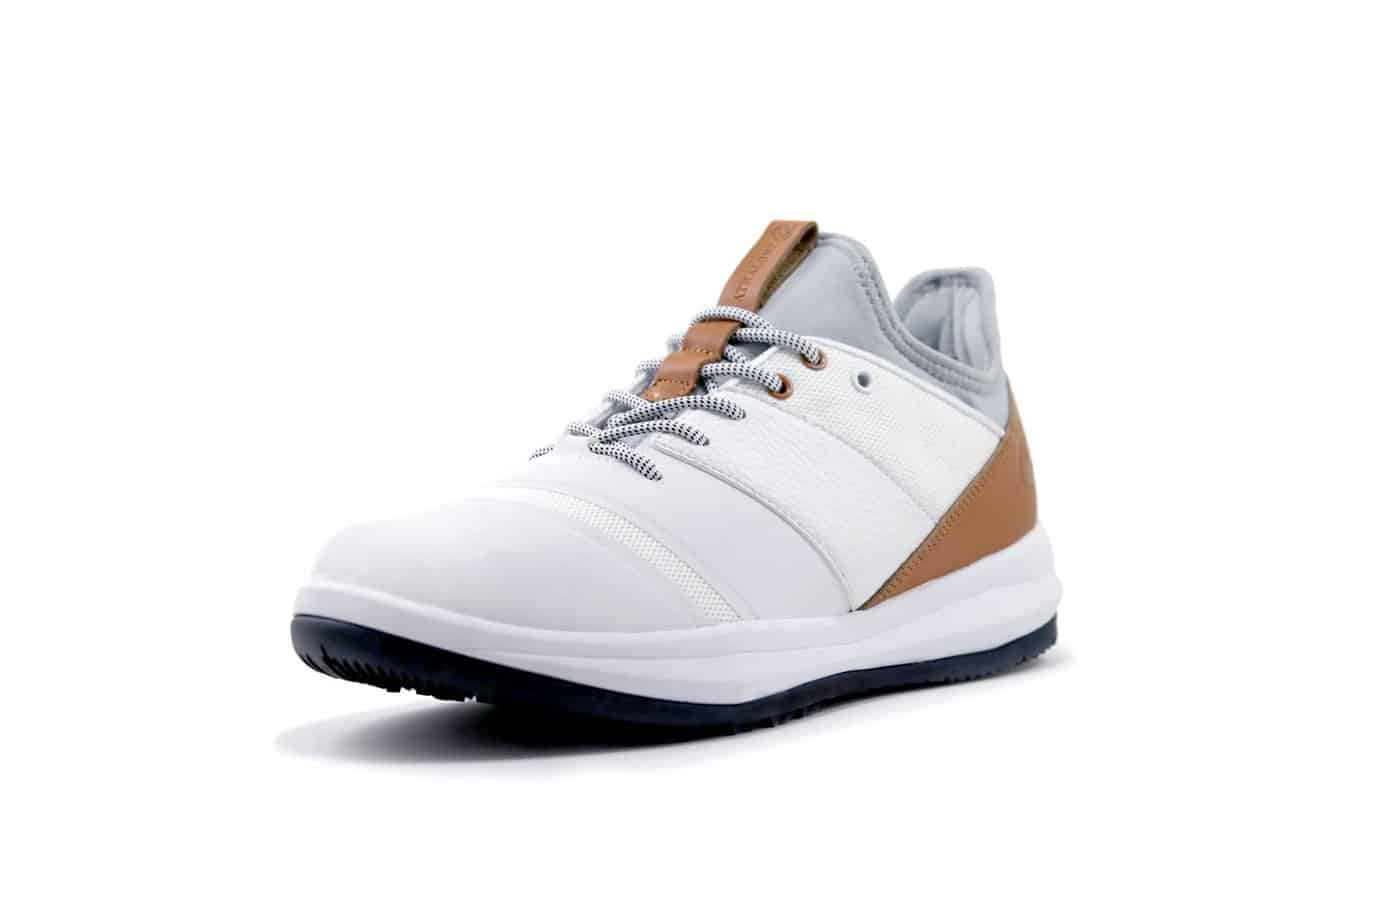 Athalonz golf shoe frontal view.